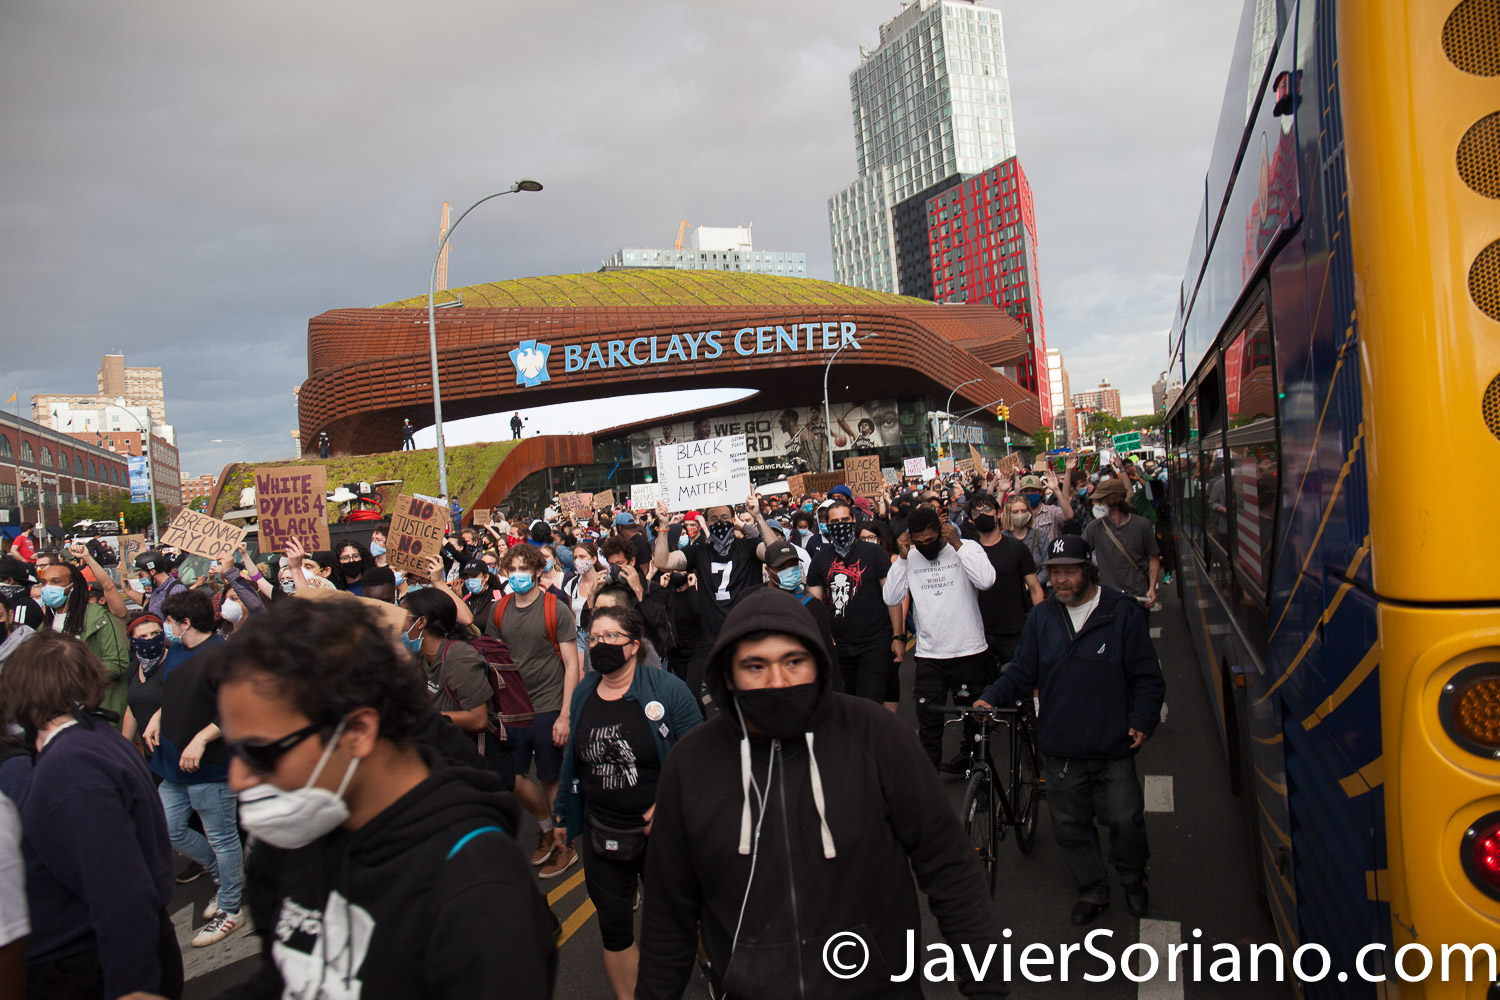 Monday, June 1, 2020. New York City - March from Barclays Center in Brooklyn to Manhattan. People demand justice for George Floyd and other people killed by police officers. Photo by Javier Soriano/www.JavierSoriano.com